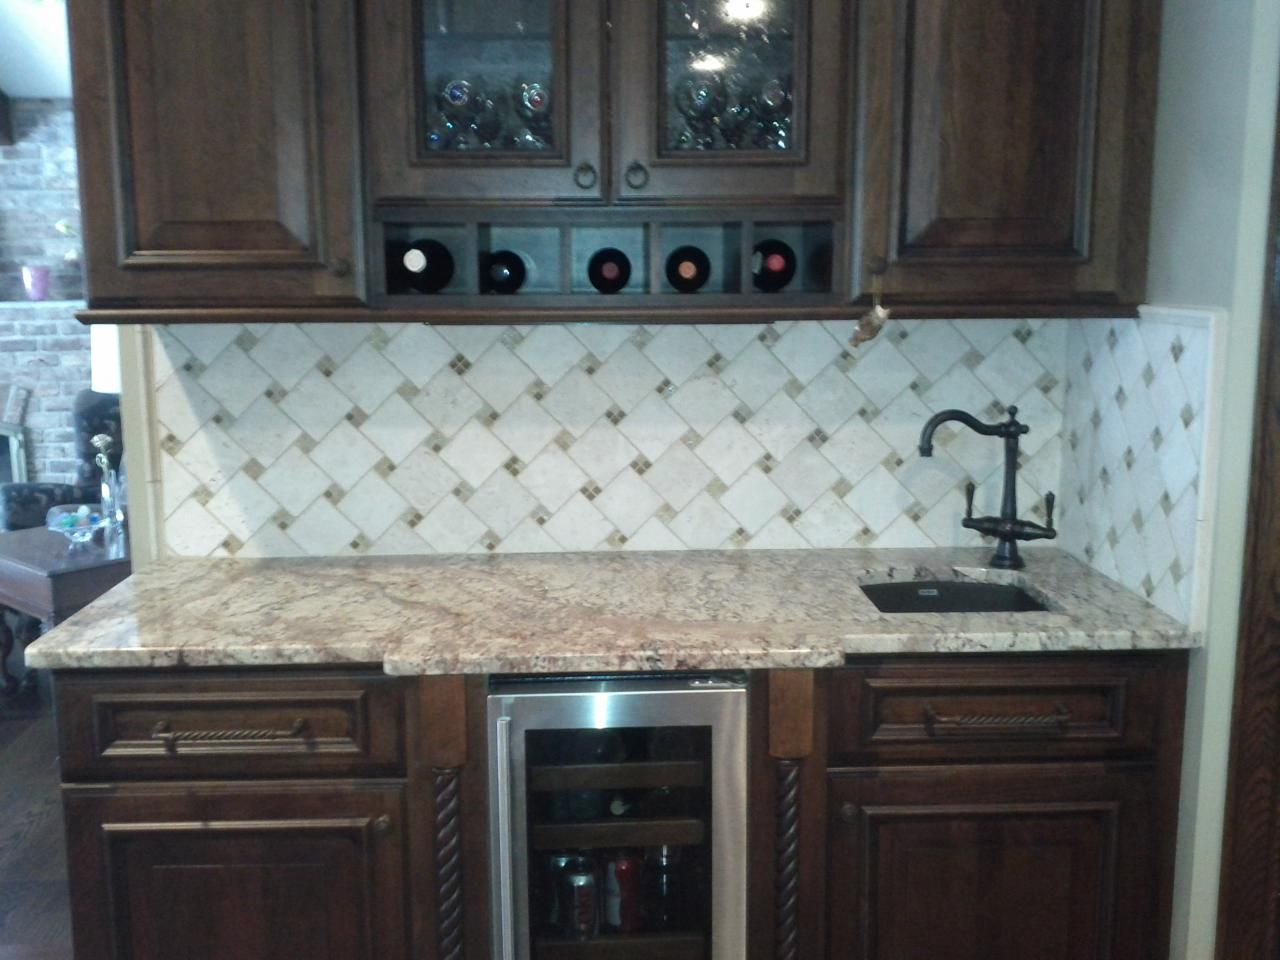 kitchen tile backslash kitchen backsplash tile 10 best images about kitchen tile backslash on Pinterest Kitchen backsplash design Marbles and Kitchen backsplash